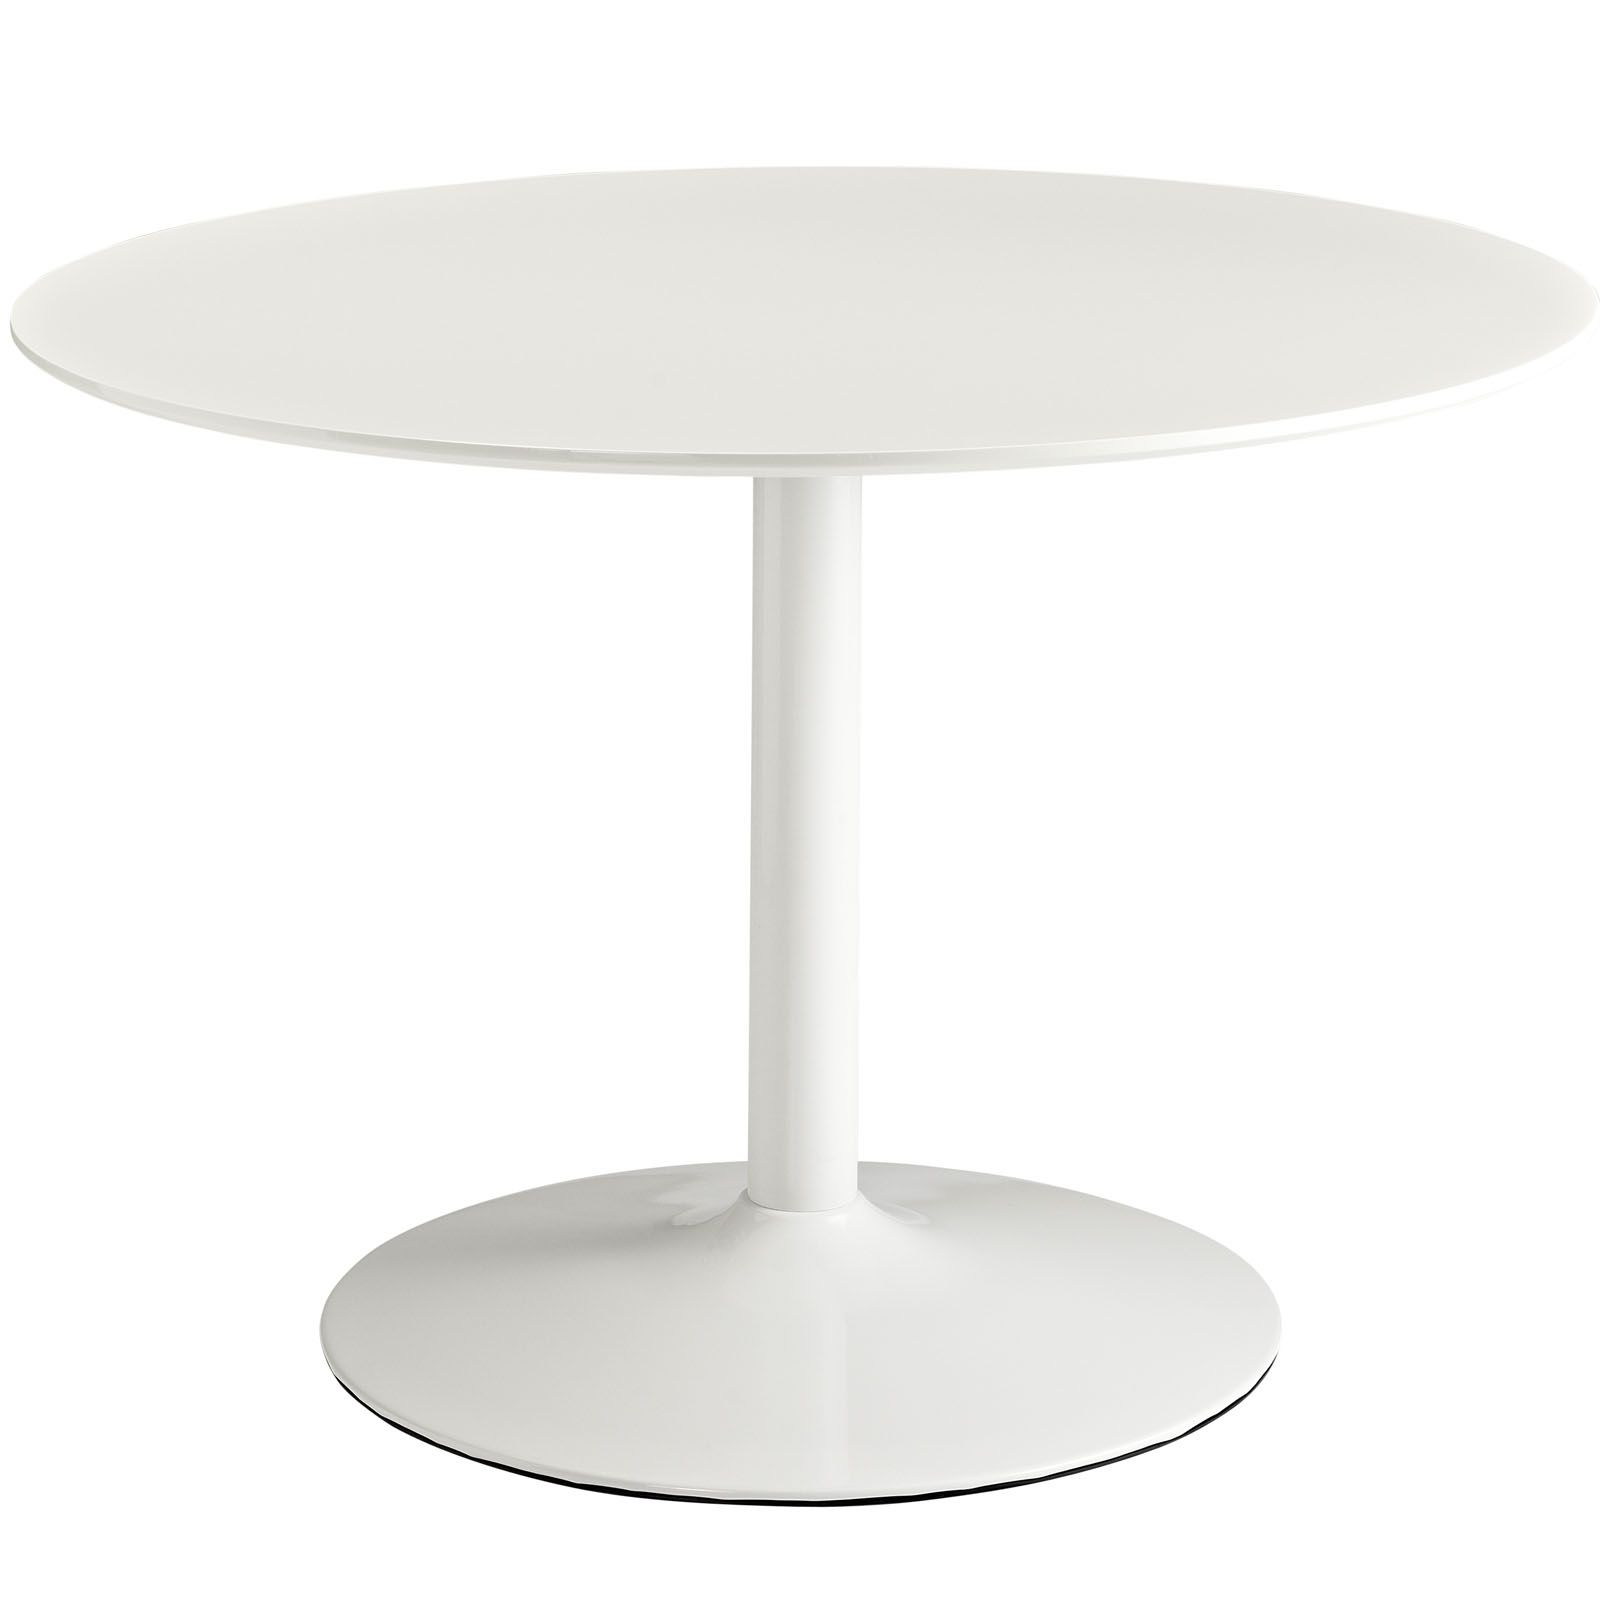 Modway Revolve Dining Table Eei 785 Round Wood Dining Table Round Dining Table Modern Pedestal Dining Table